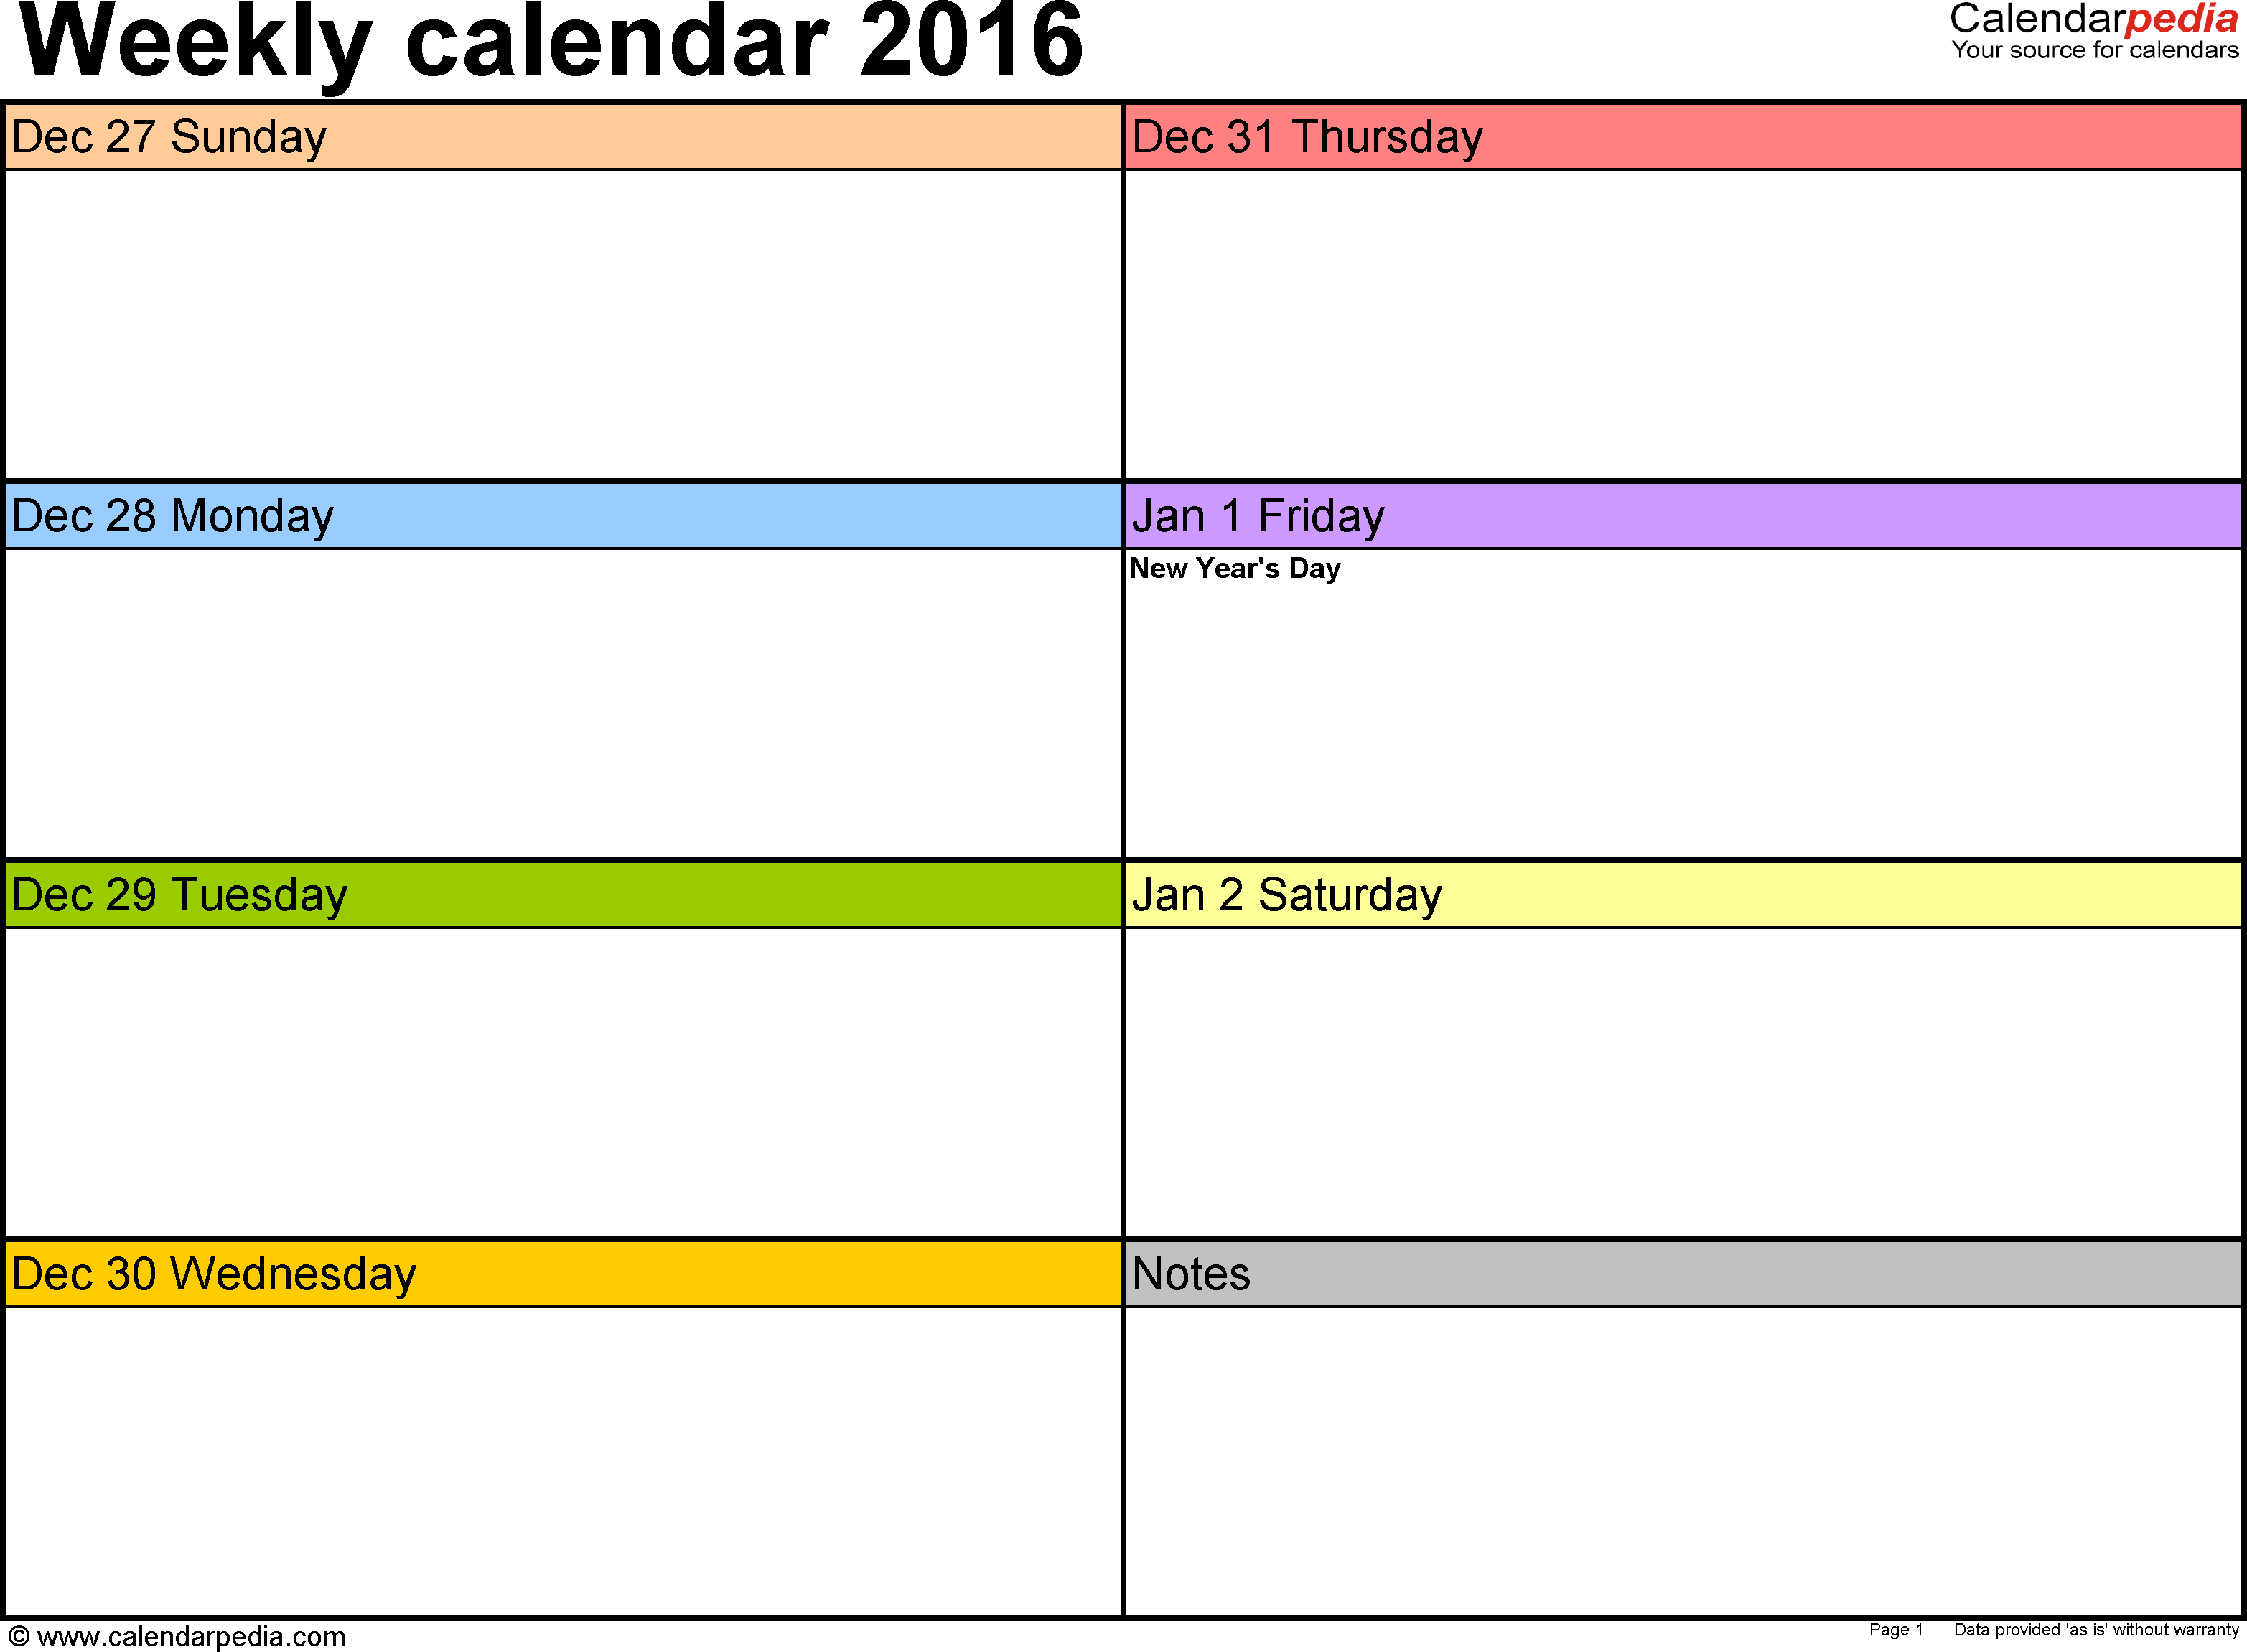 Weekly calendar 2016 for word 12 free printable templates for Free downloadable calendar templates for word